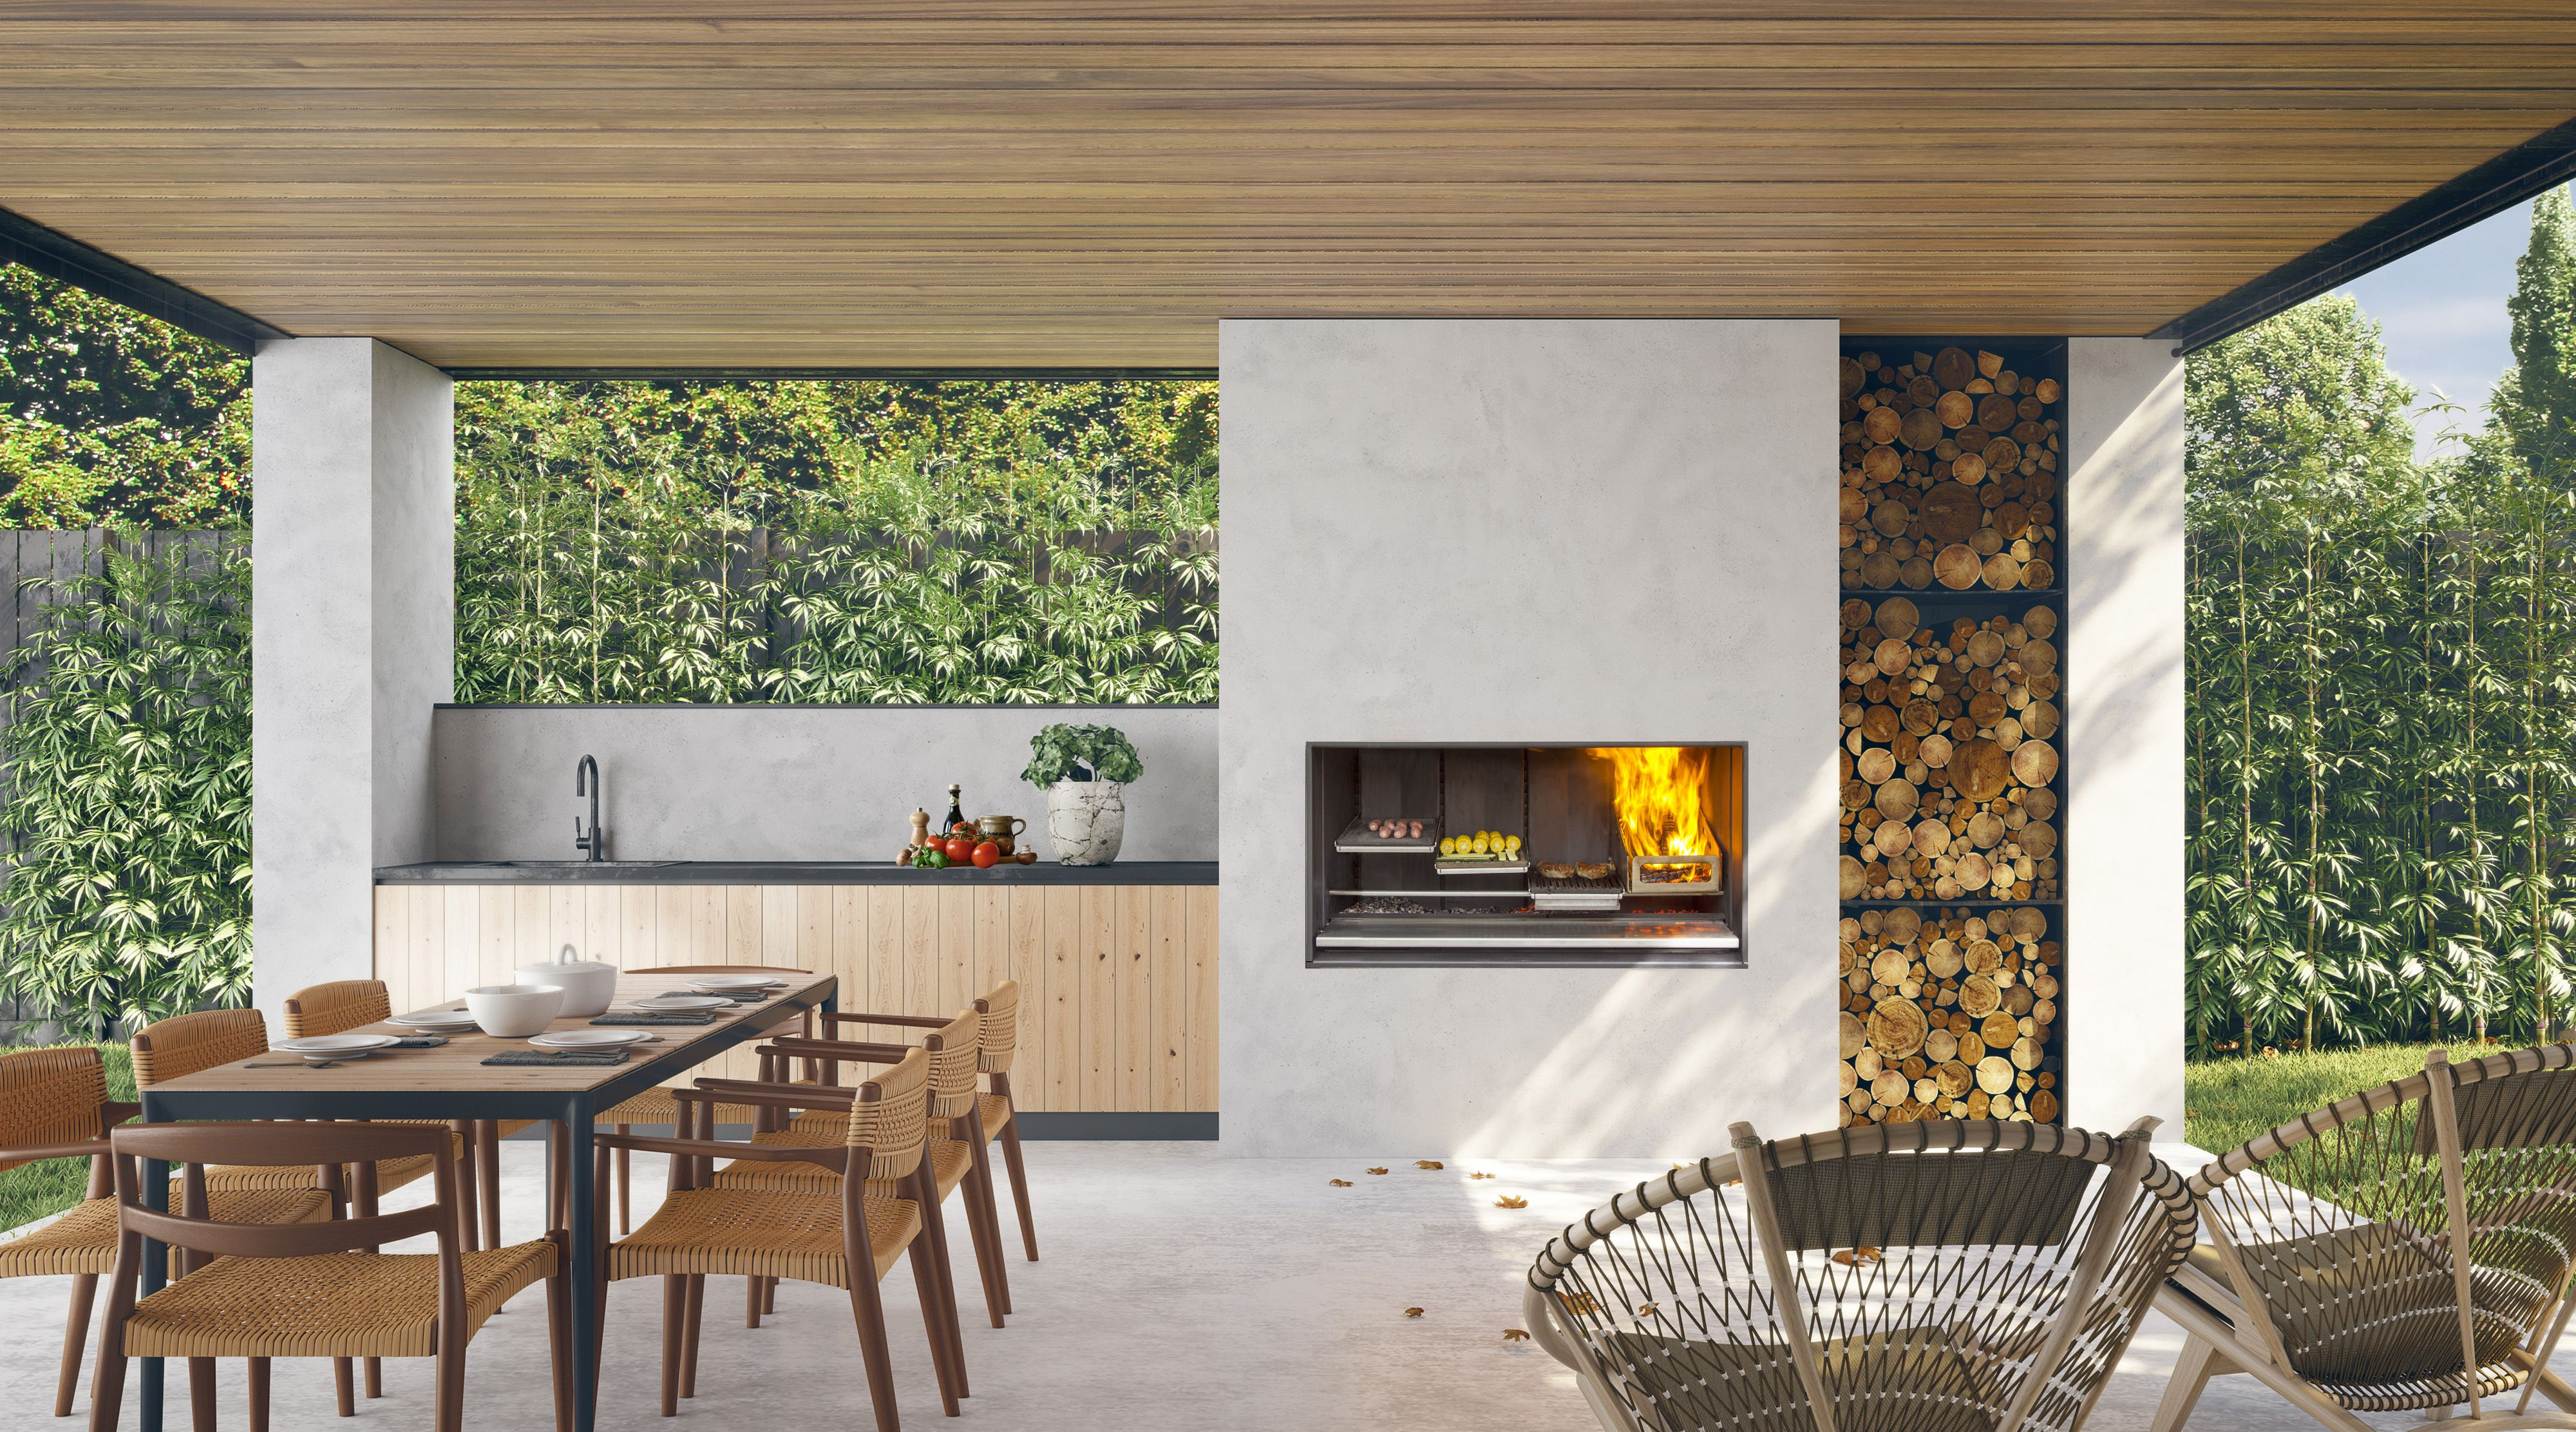 Escea S Outdoor Fireplace Kitchen Grill Then Chill When Not Being Used The Cooking Grills Hide Outdoor Fireplace Outdoor Gas Fireplace Outside Fireplace